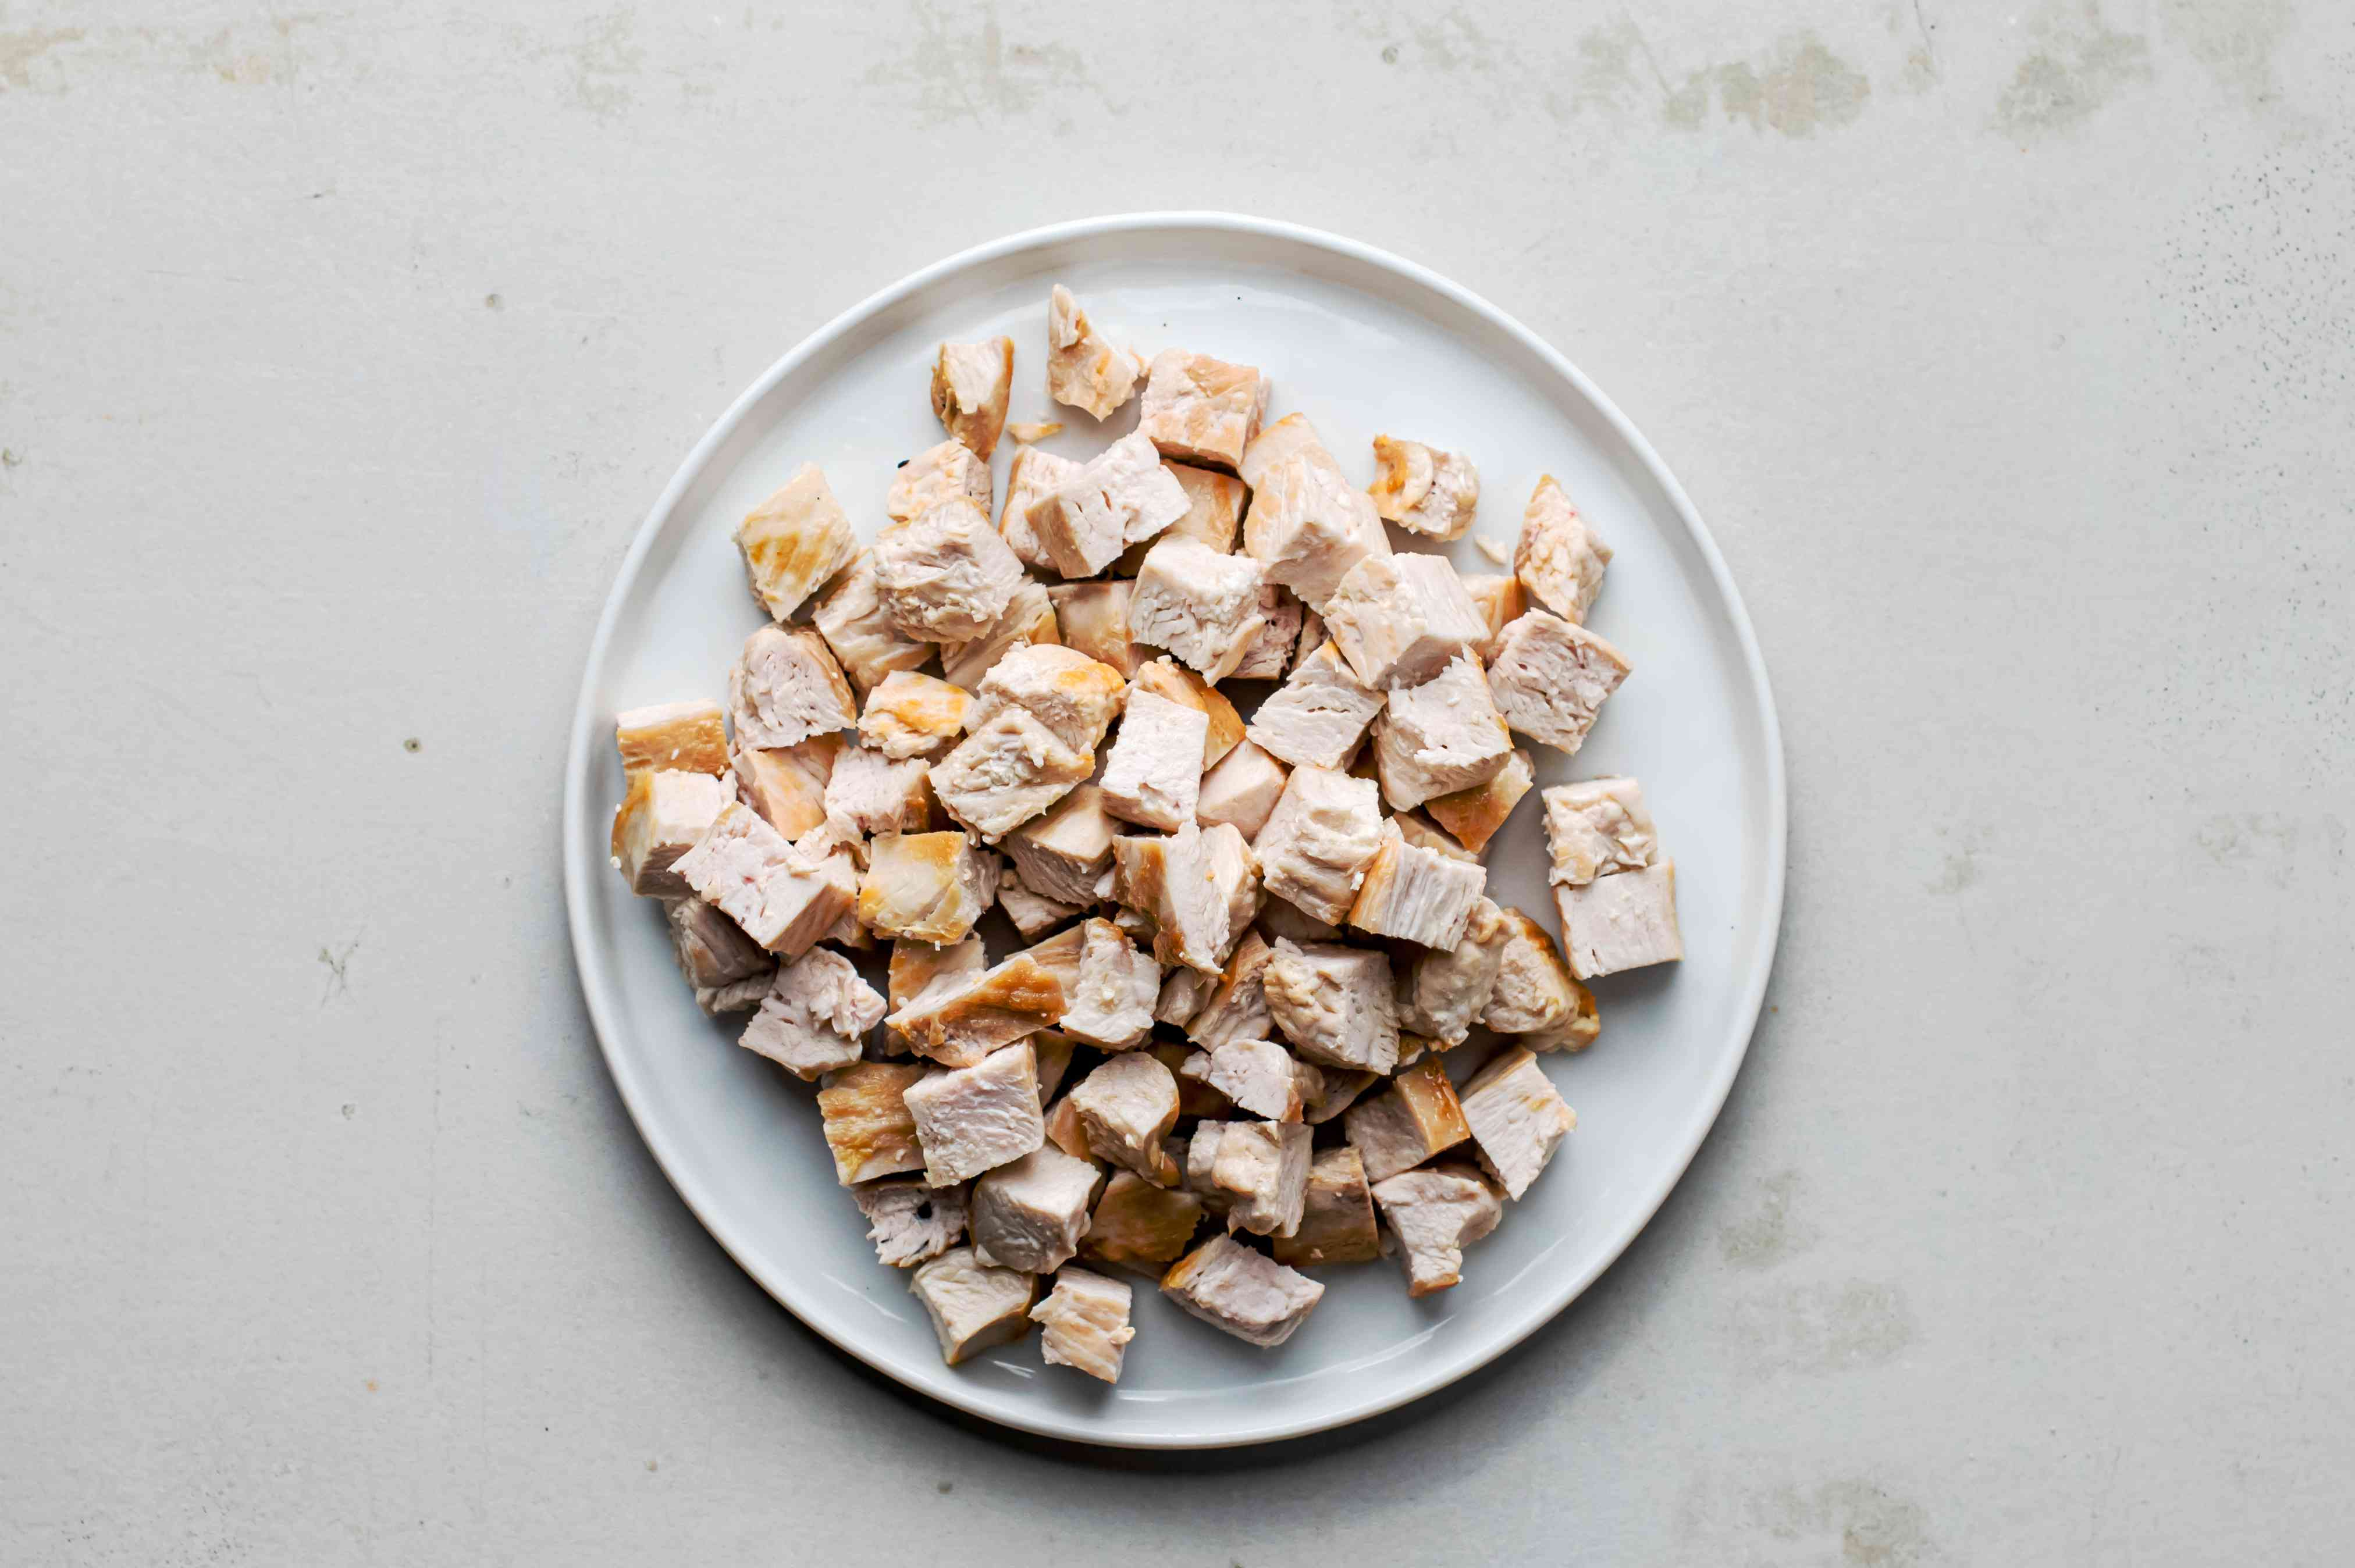 Diced chicken pieces on a white plate